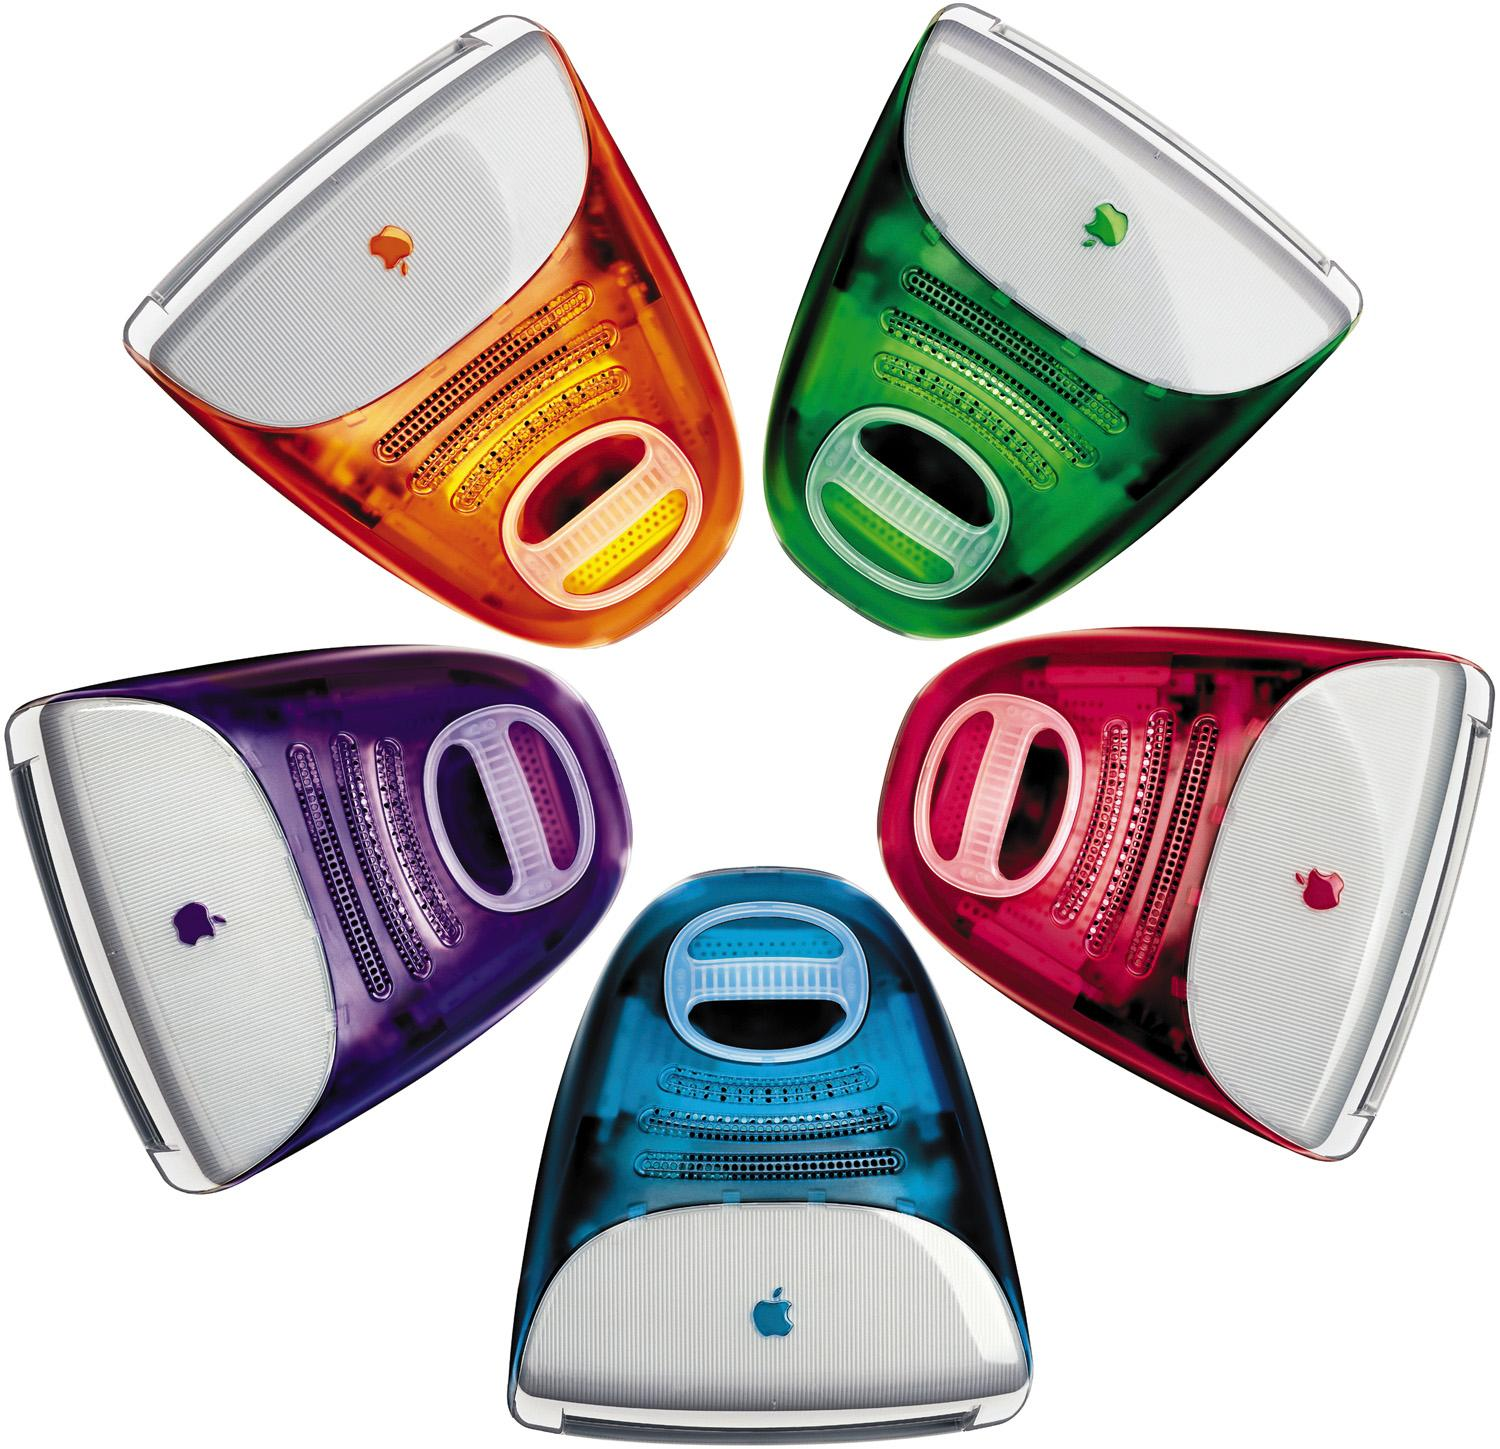 Candy-colored iMacs are emotional design